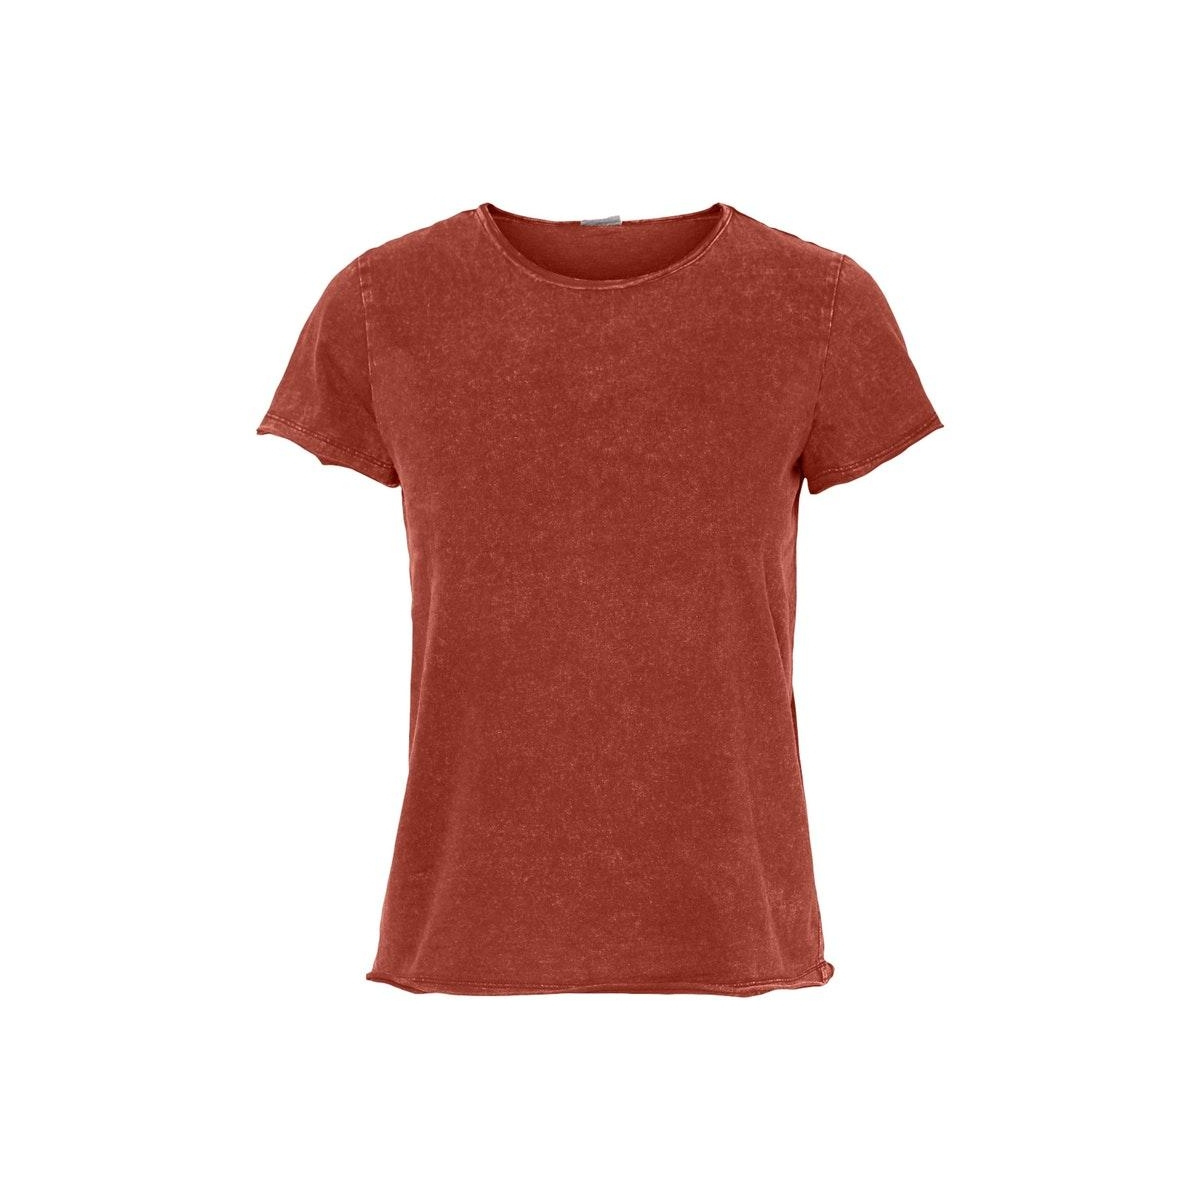 nmnaya nate s/s washed top color 27010085 noisy may t-shirt burnt henna